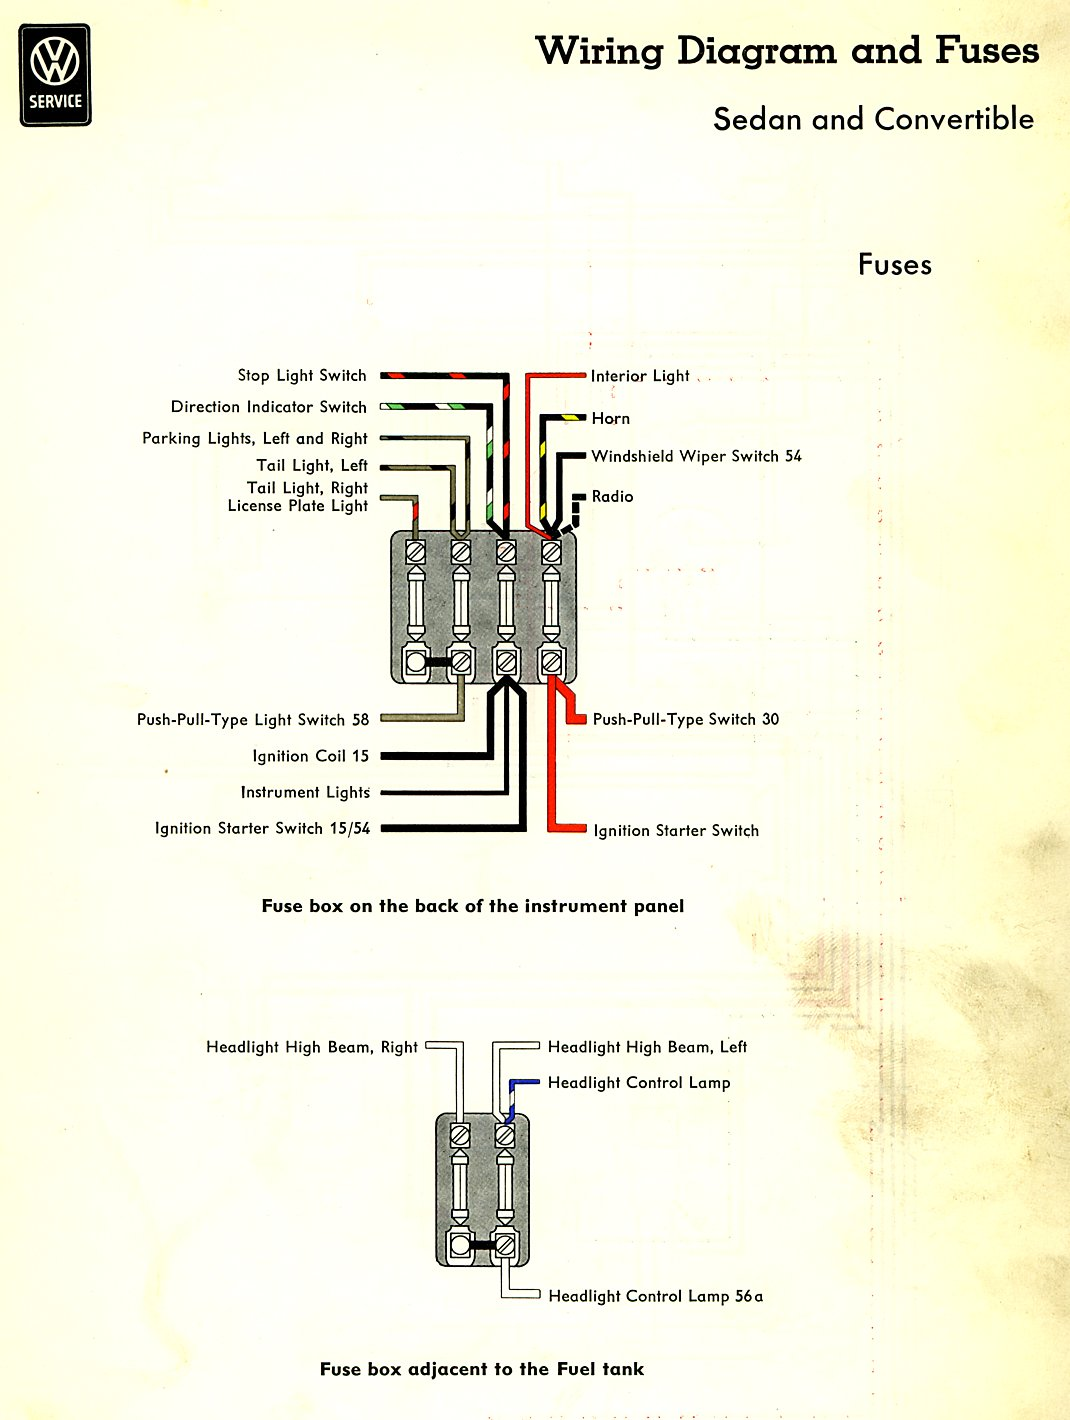 bug_58_fuses thesamba com type 1 wiring diagrams 2001 VW Beetle Engine Diagram at fashall.co